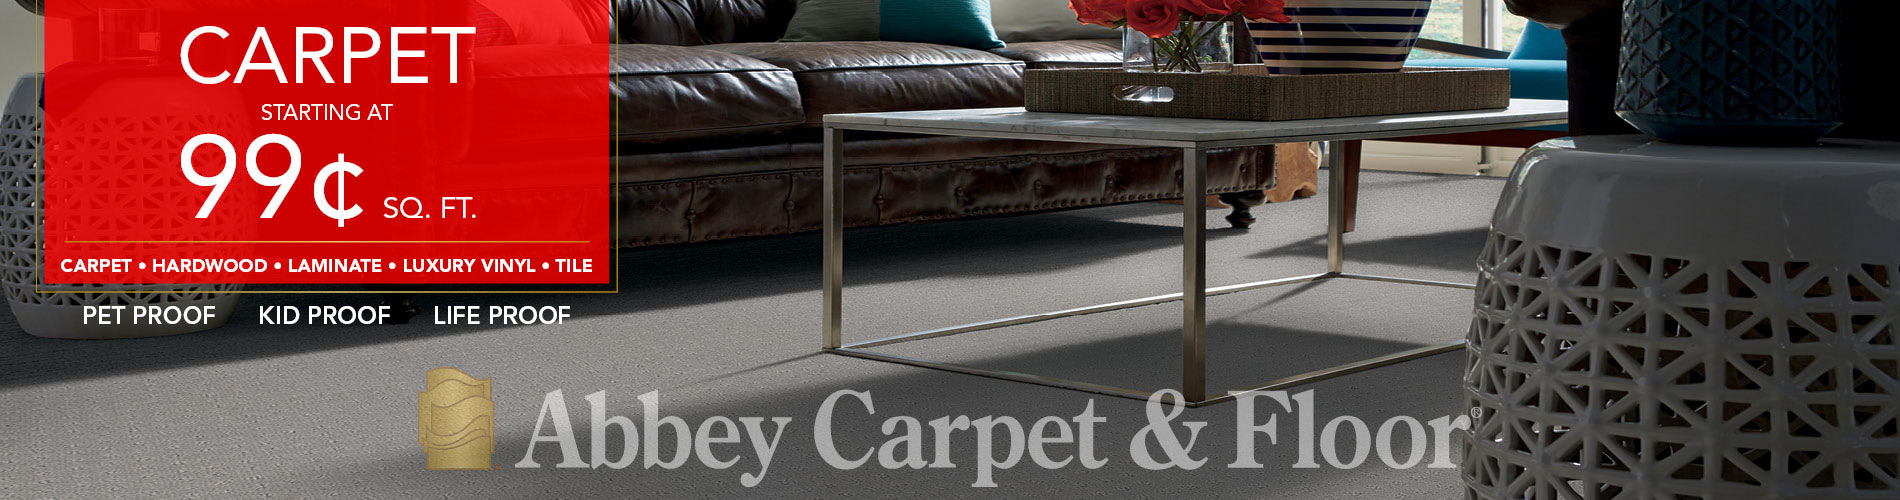 Carpet starting at 99¢ sq.ft. now at Abbey Carpet & Floor of Puyallup